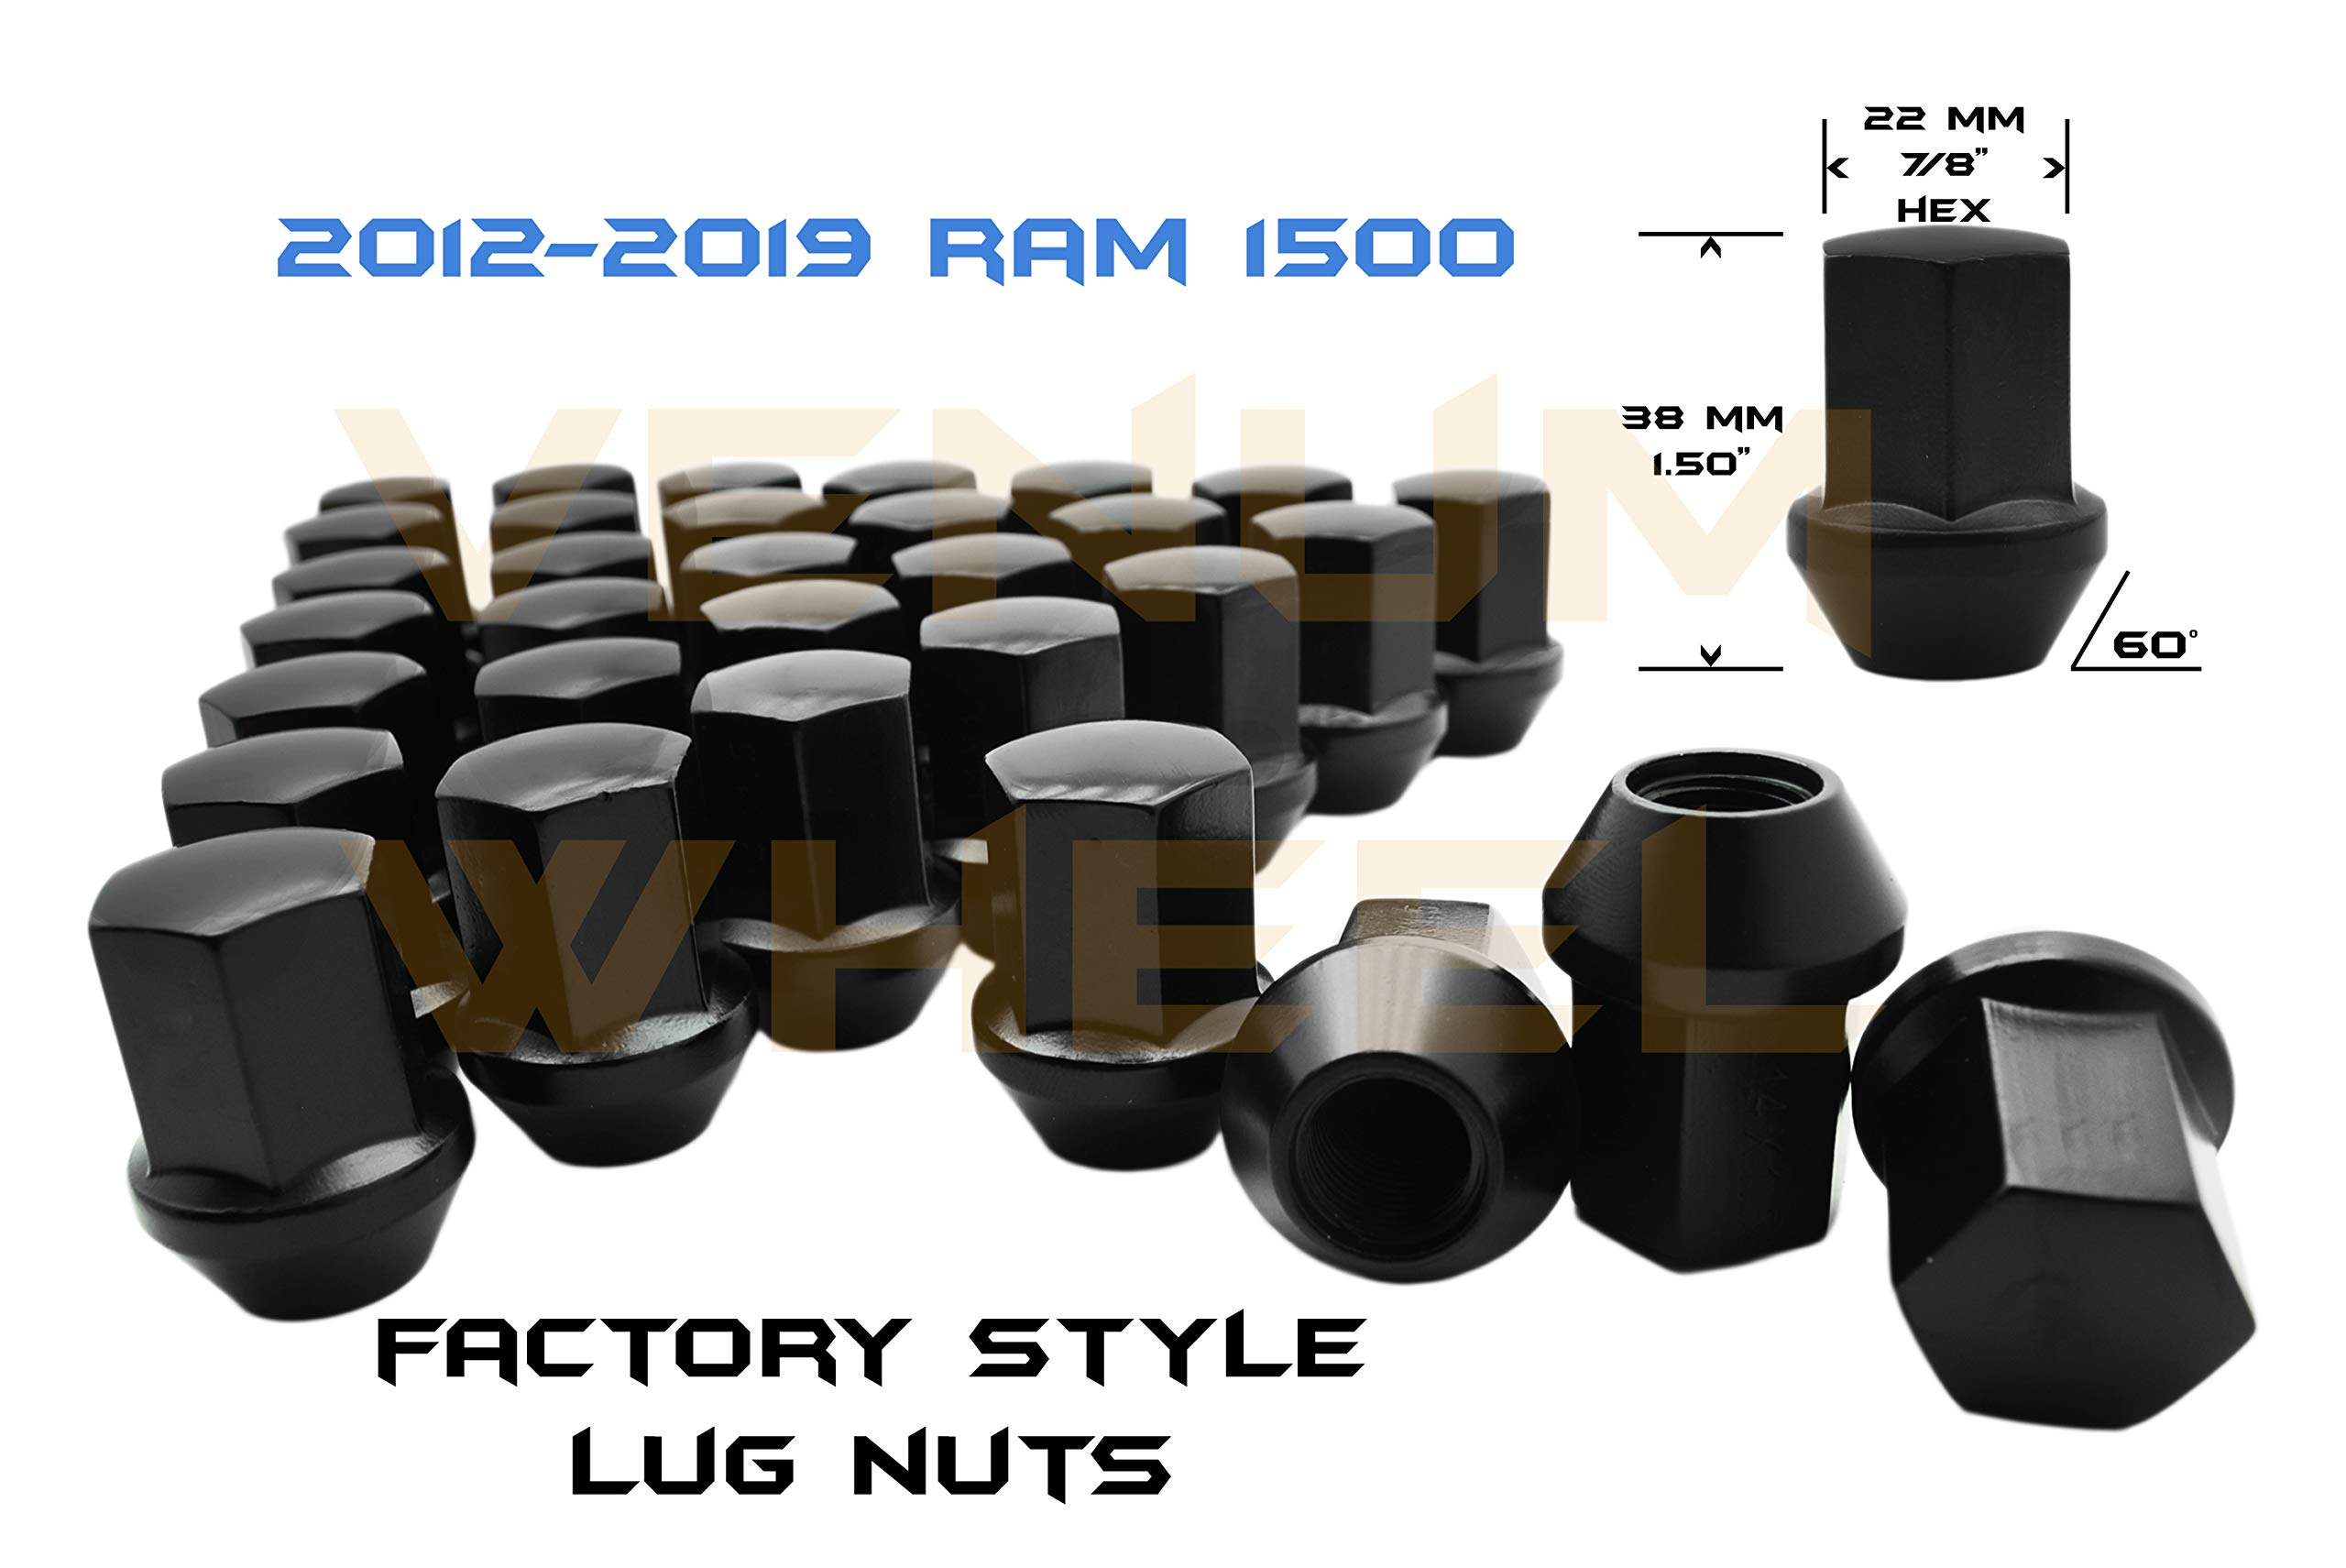 Venum wheel accessories 12-19 Ram Truck 1500 Black OEM Factory Style Black Lug Nuts M14x1.5 W/ 22MM Hex Close End 1.5'' Tall 5x5.5 New Model Ram 1500 Made in USA (LNRAM141BK-20)